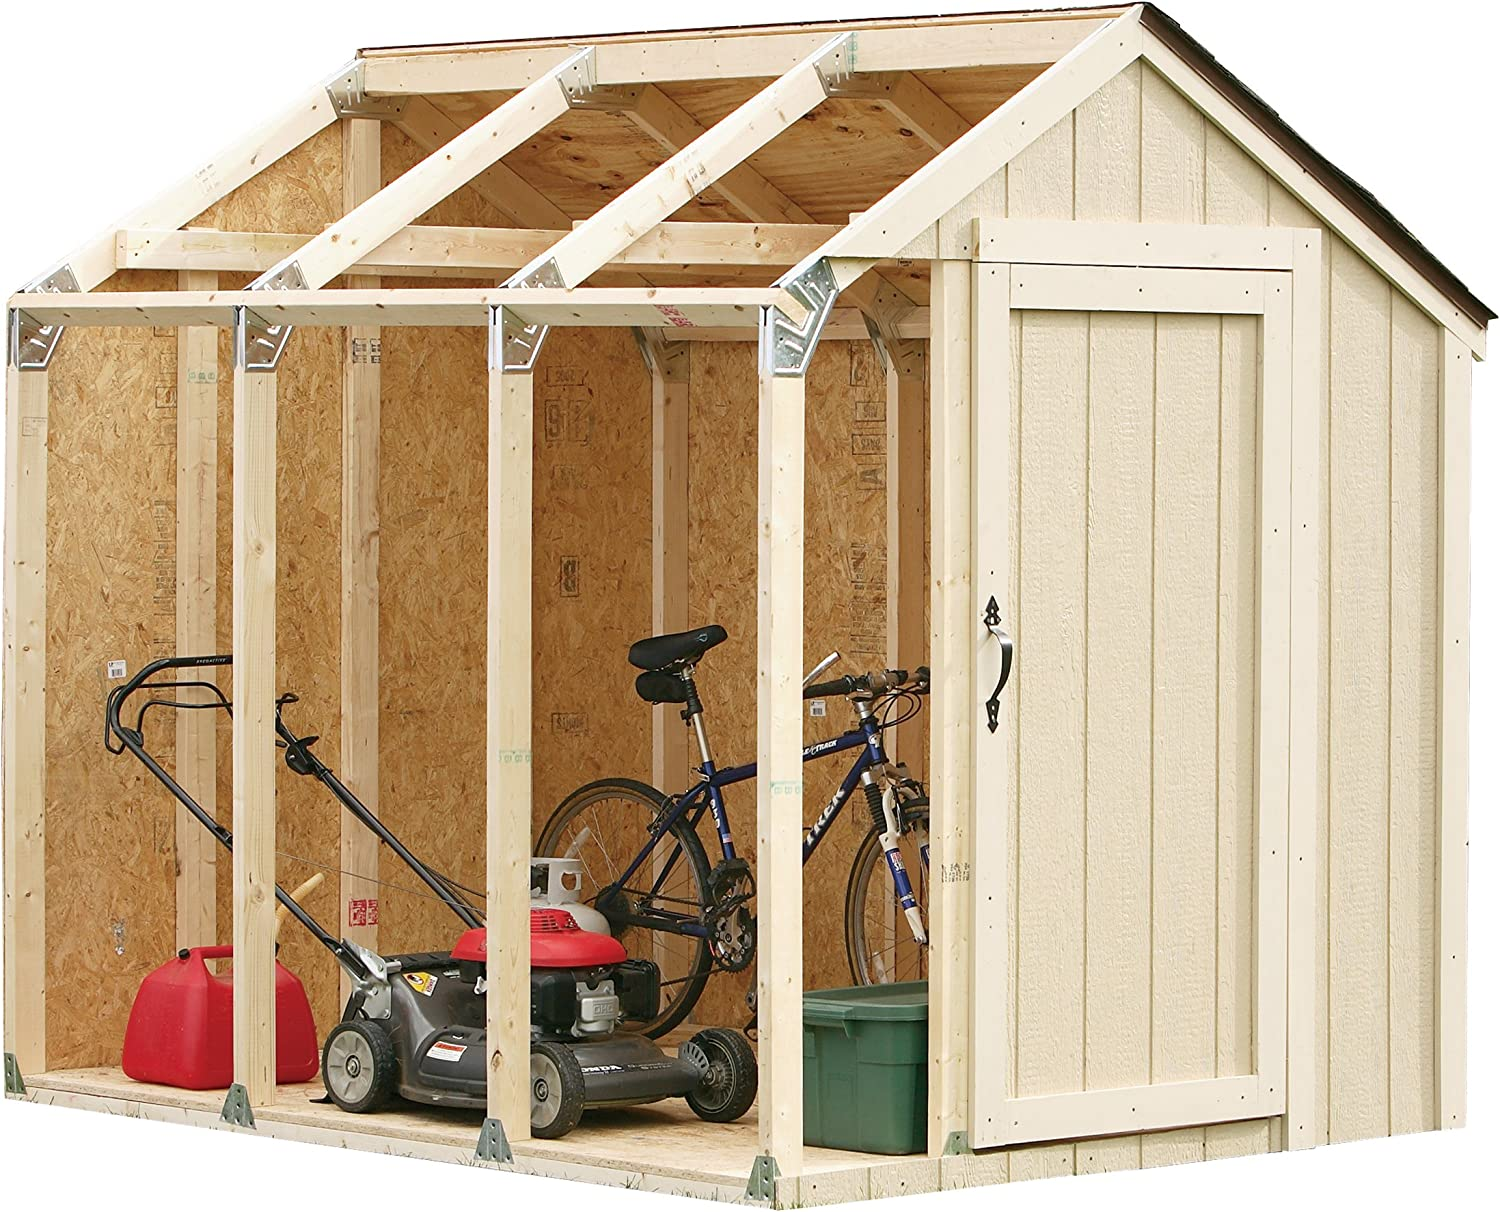 Amazon Com 2x4basics 90192mi Custom Shed Kit With Peak Roof Storage Sheds Garden Outdoor